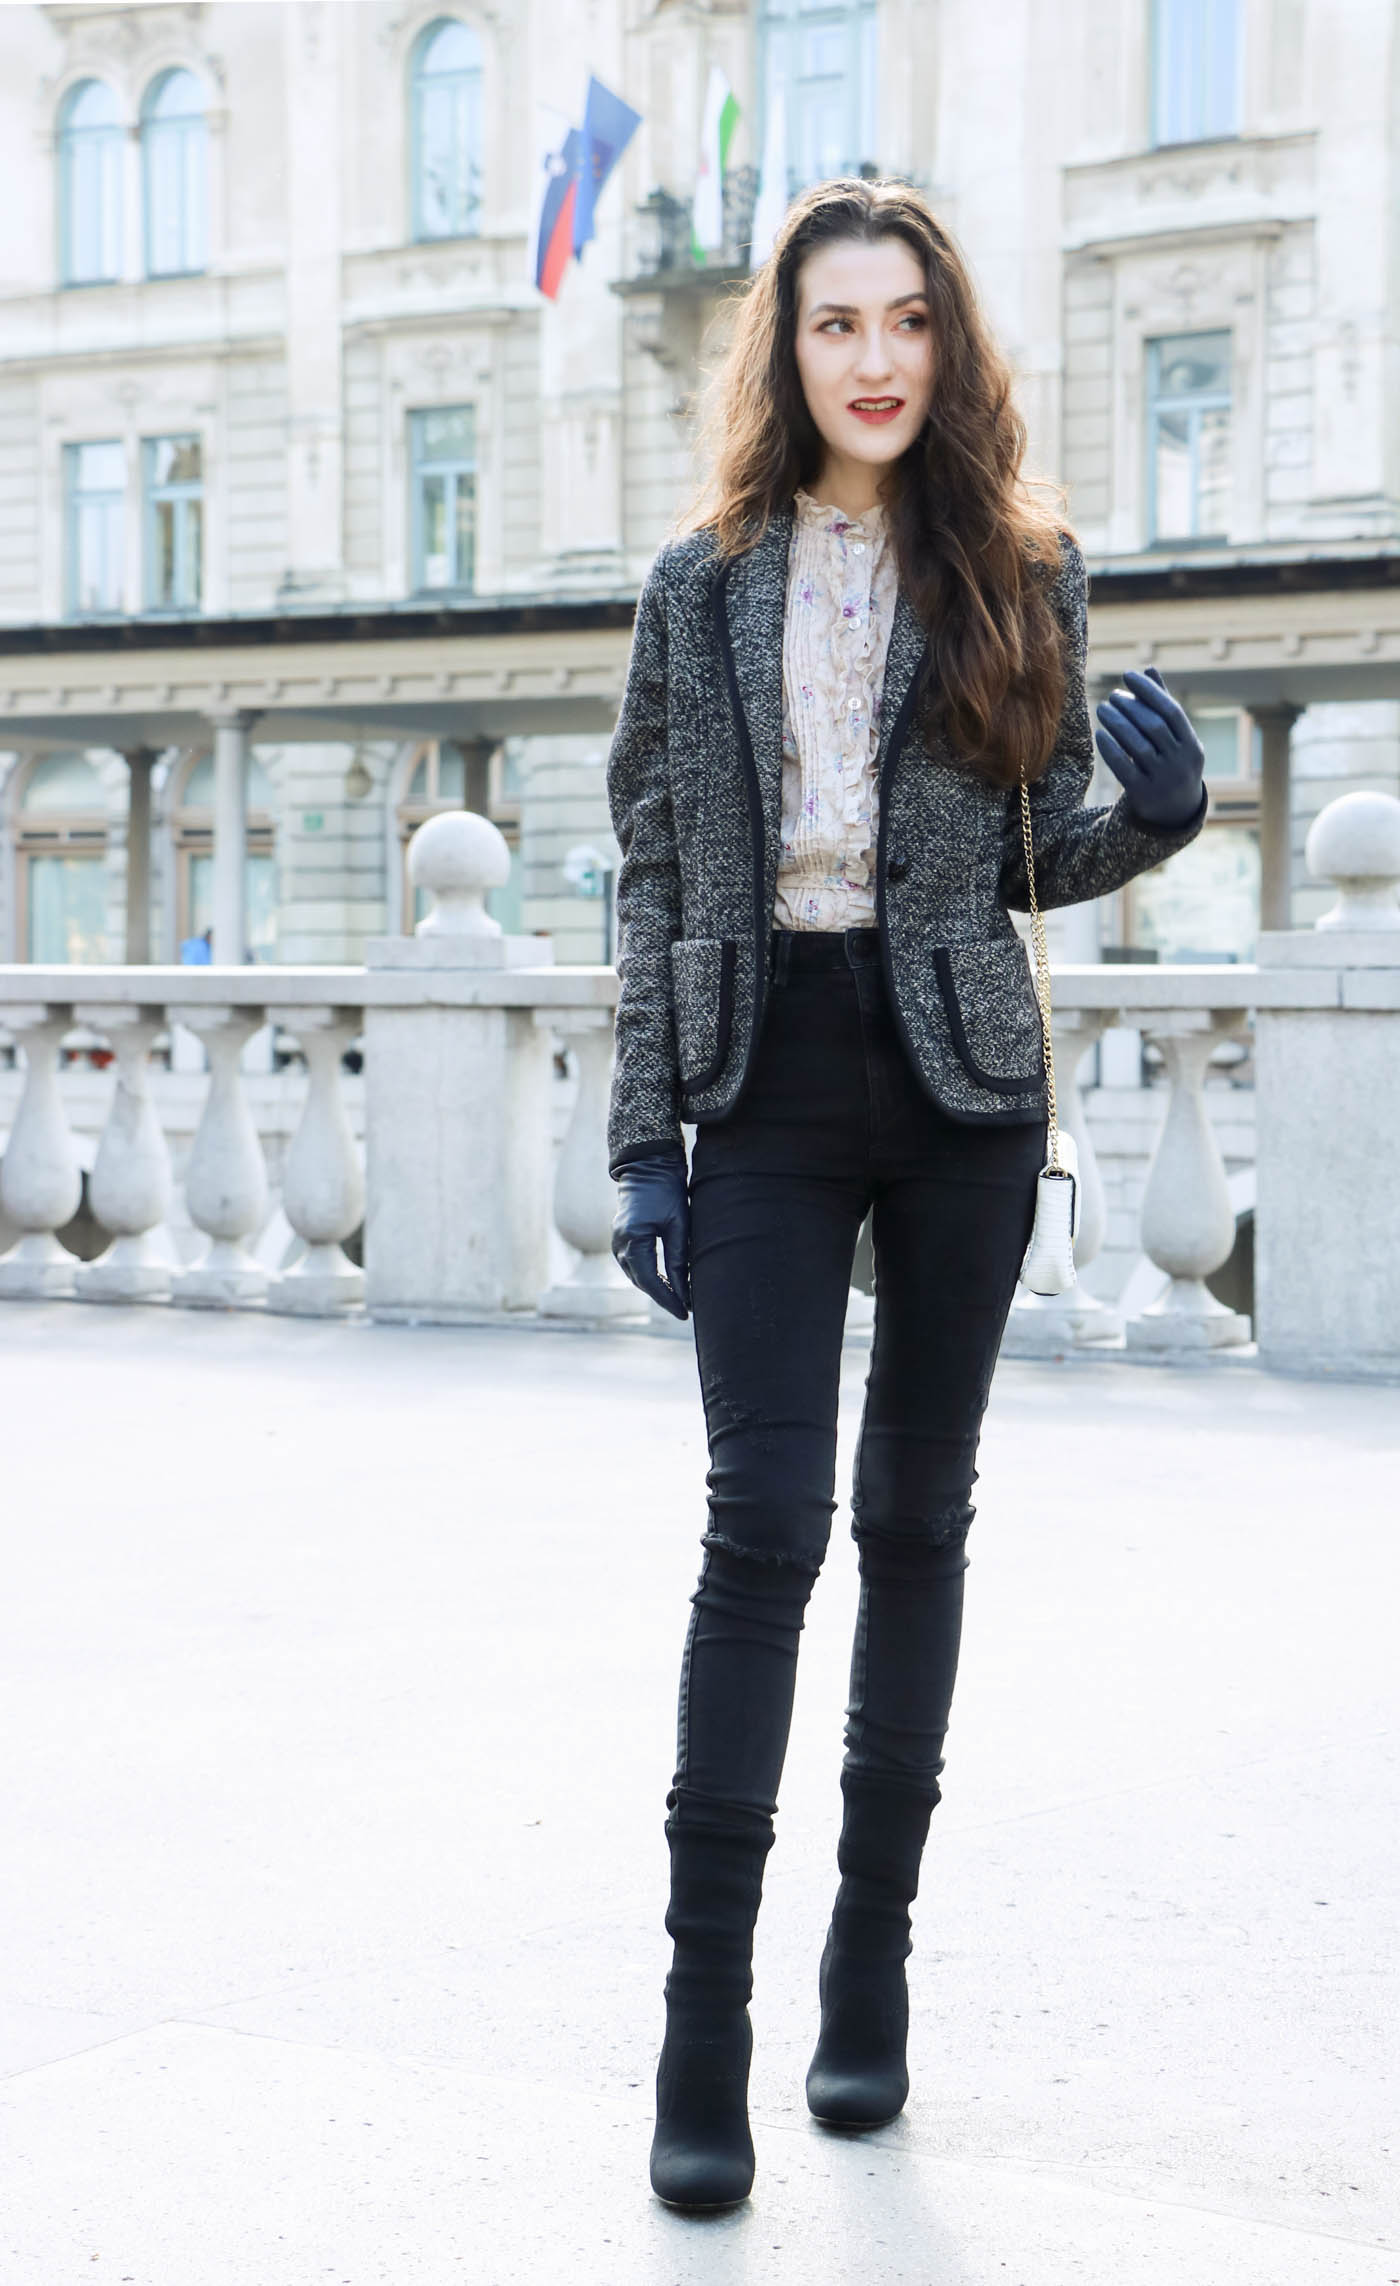 Fashion Blogger Veronika Lipar of Brunette from Wall wearing black skinny jeans, black sock ankle boots and party blouse under tweed black and white blazer